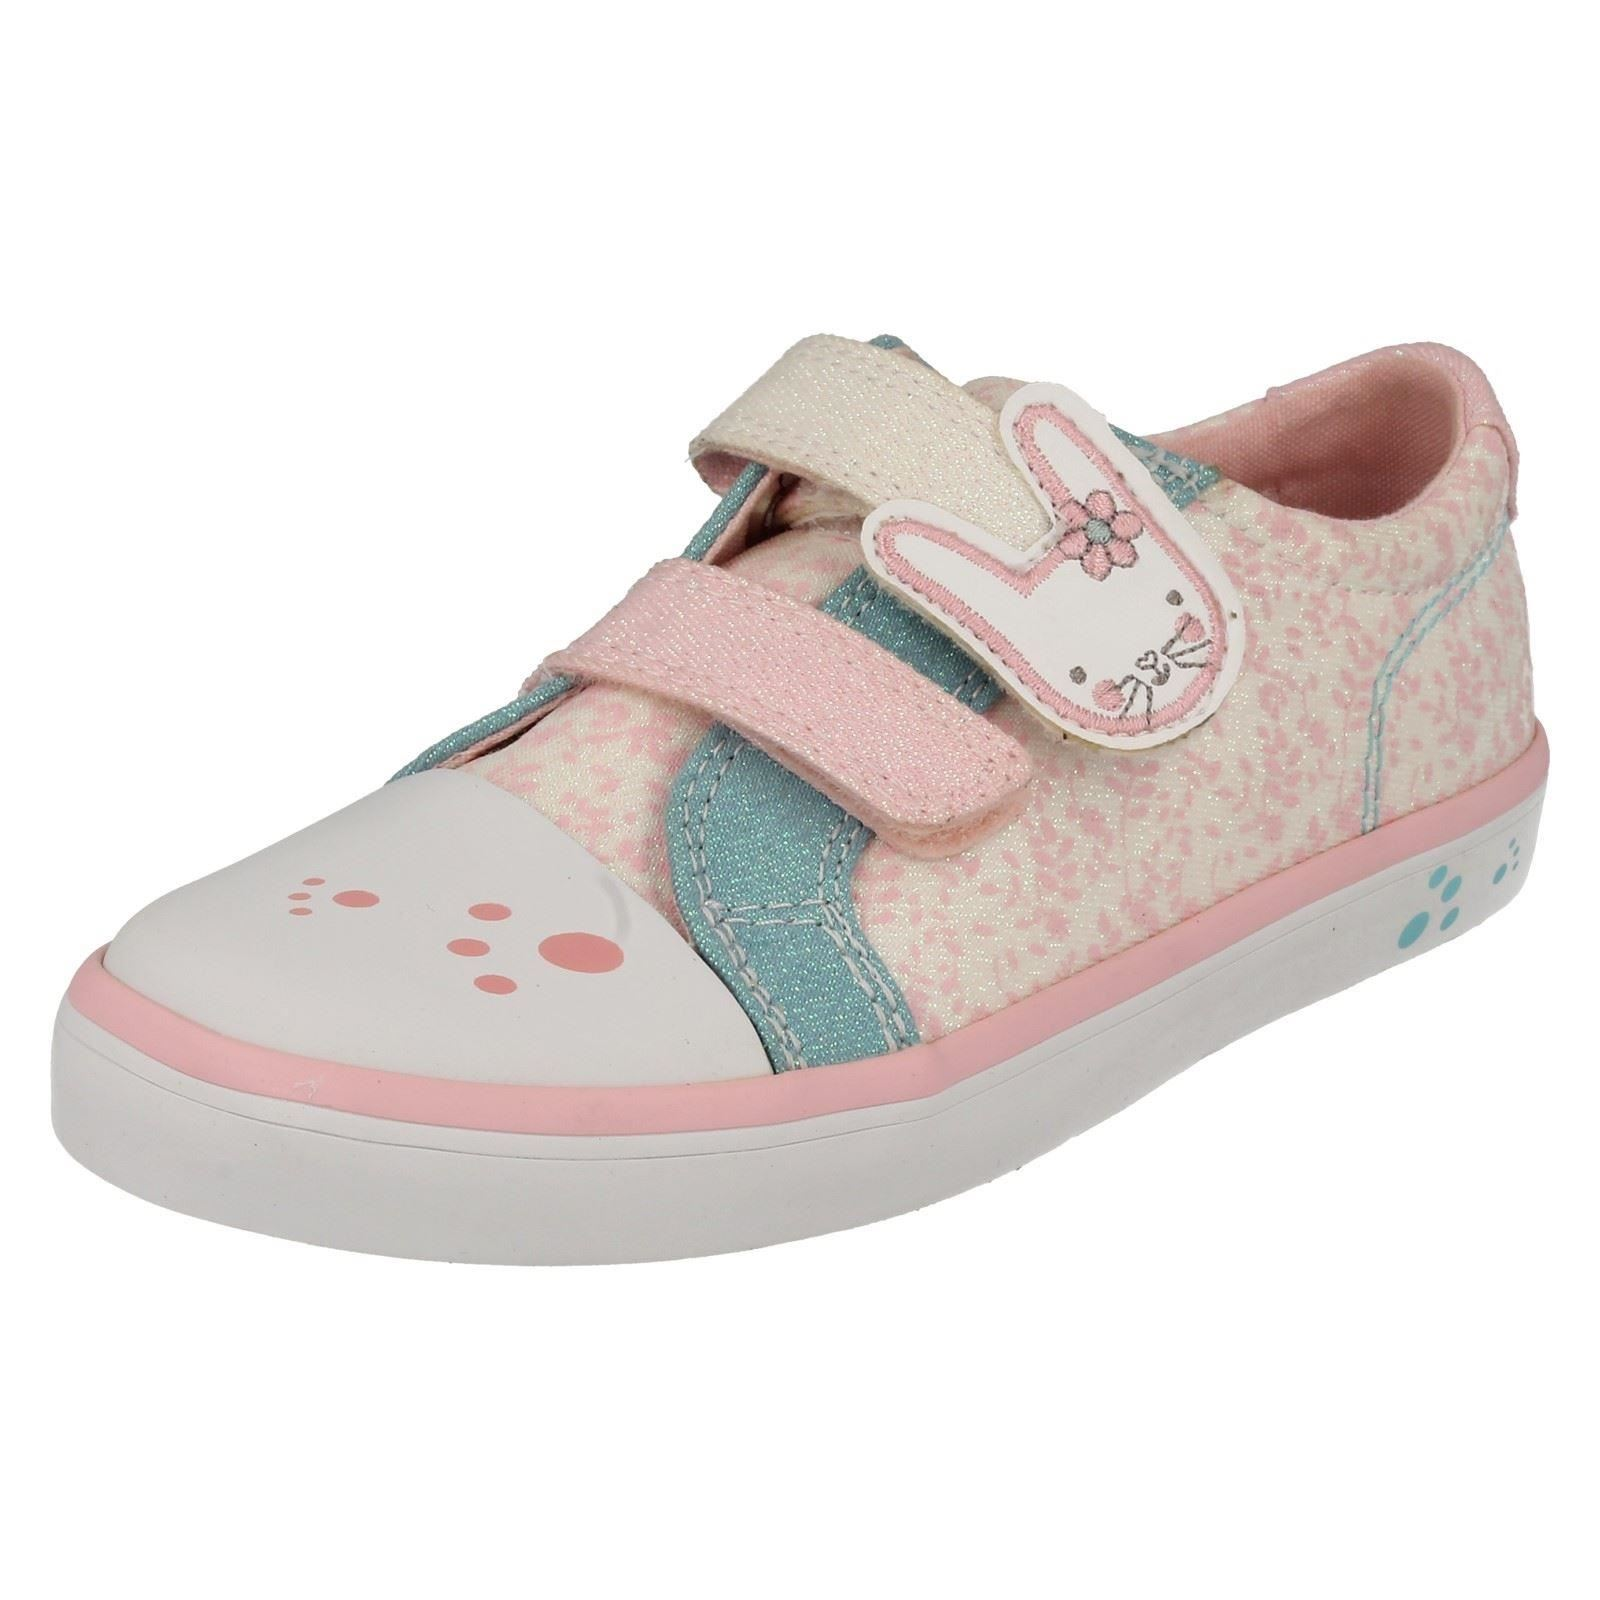 clarks casual canvas shoes gracie bea ebay